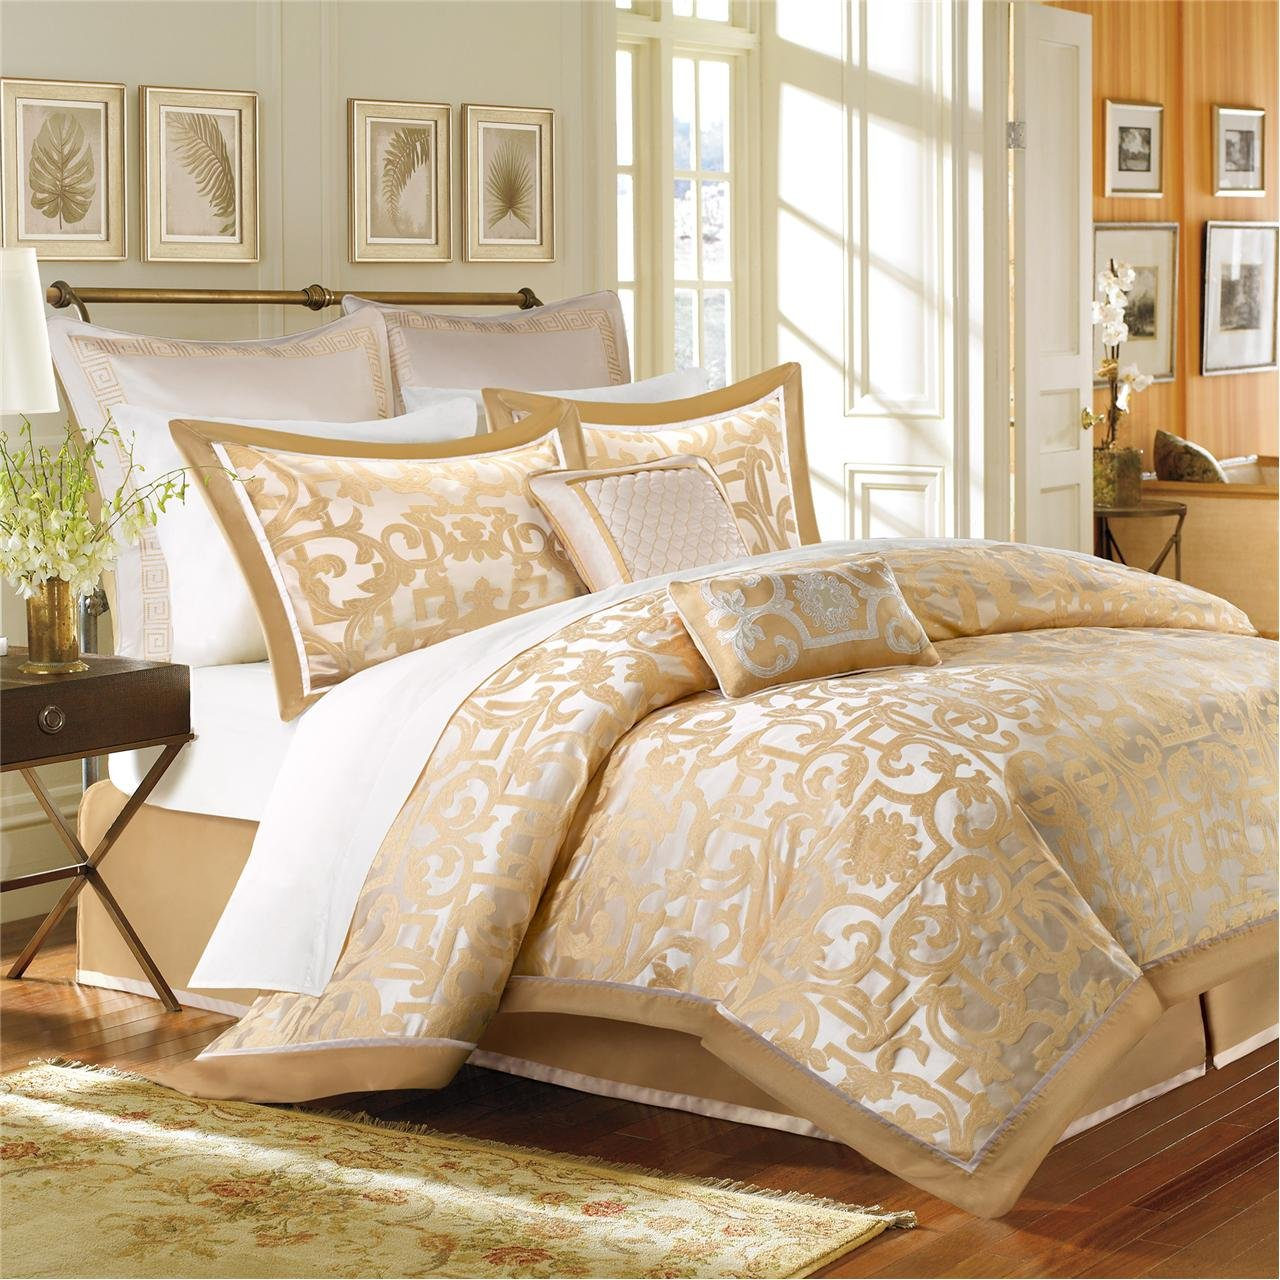 Madison Park Signature Castello 8 Piece Comforter Set Gold Queen